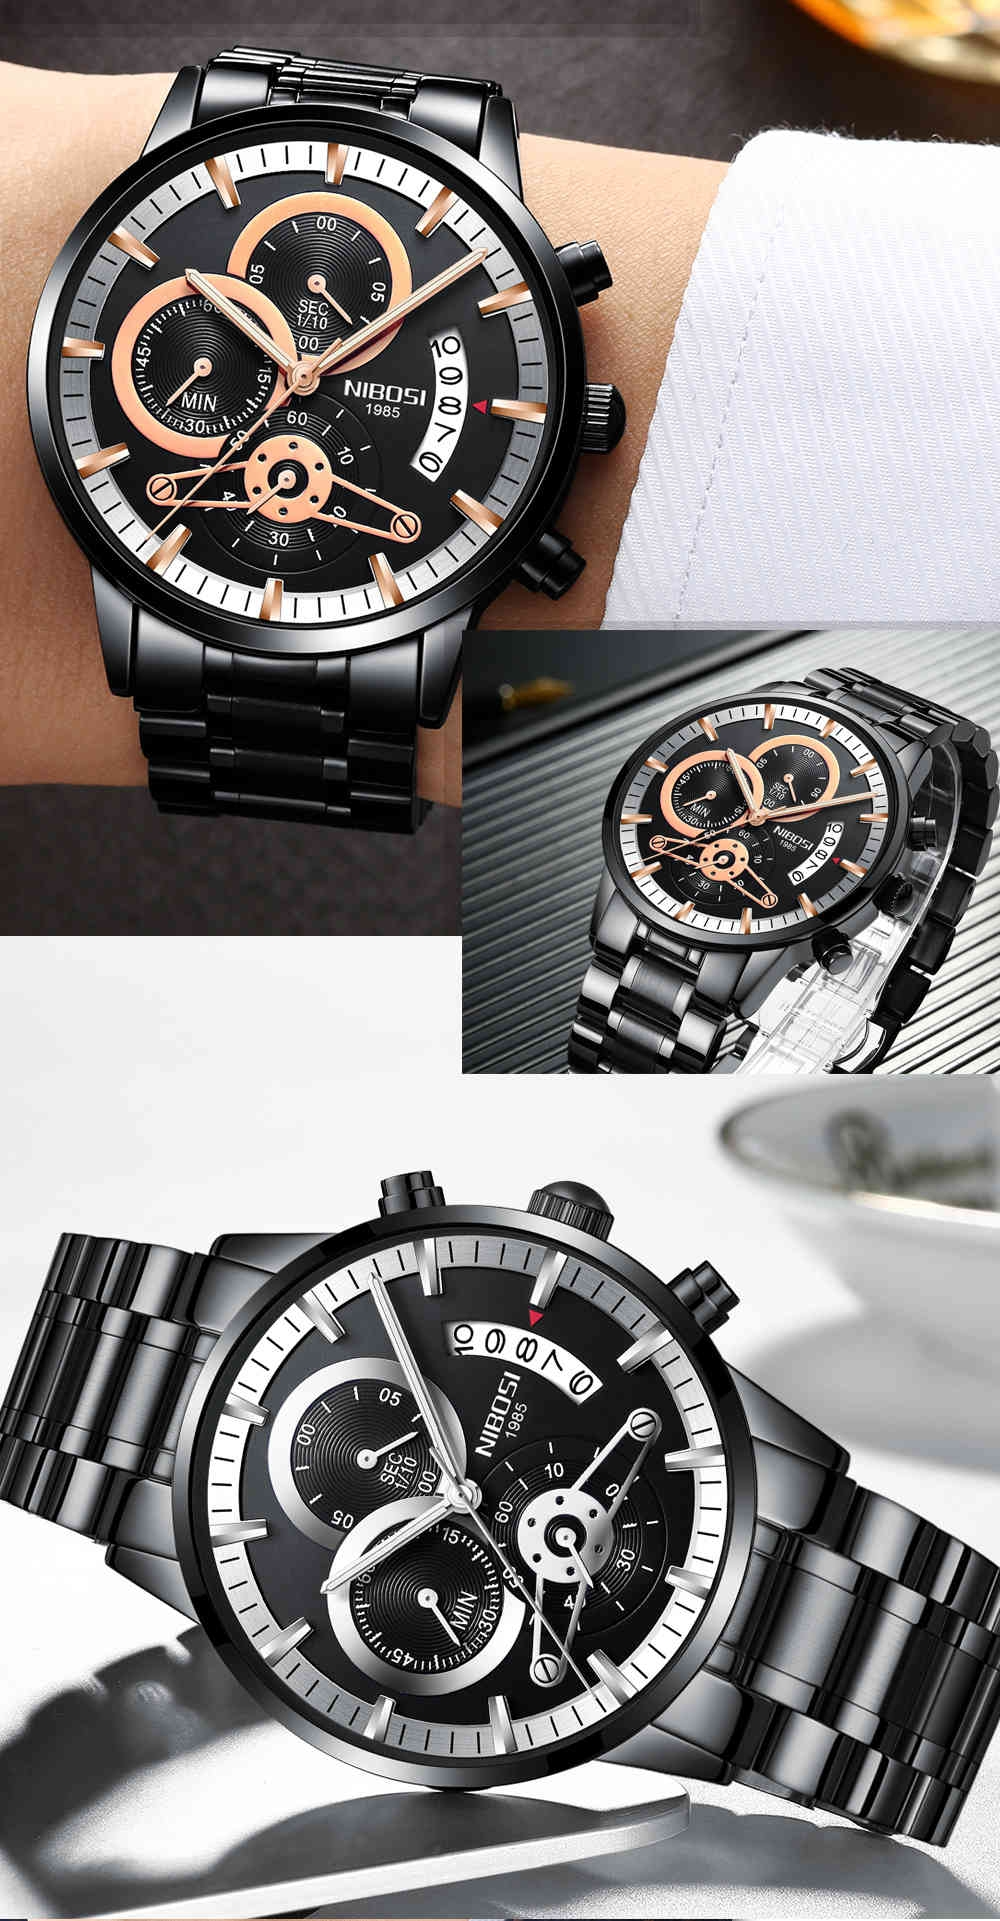 watches military display date black watch hand strap valentines business dial top leather luxury clock wristwatch fashion ochstin brand chronograph him men for products gifts